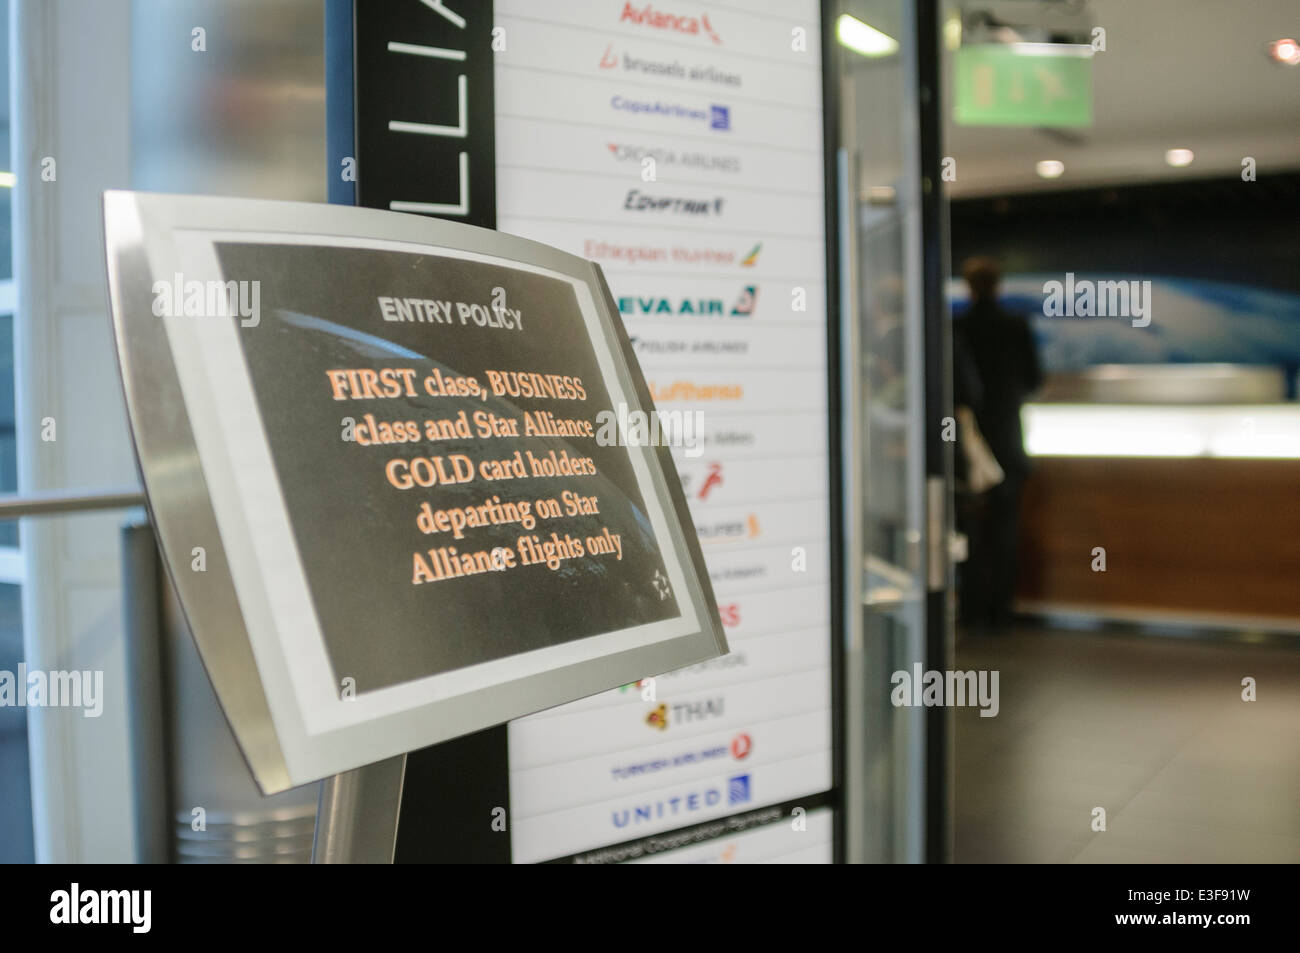 Sign at the entrance to the Star Alliance Lounge at Heathrow Terminal 1 - Stock Image